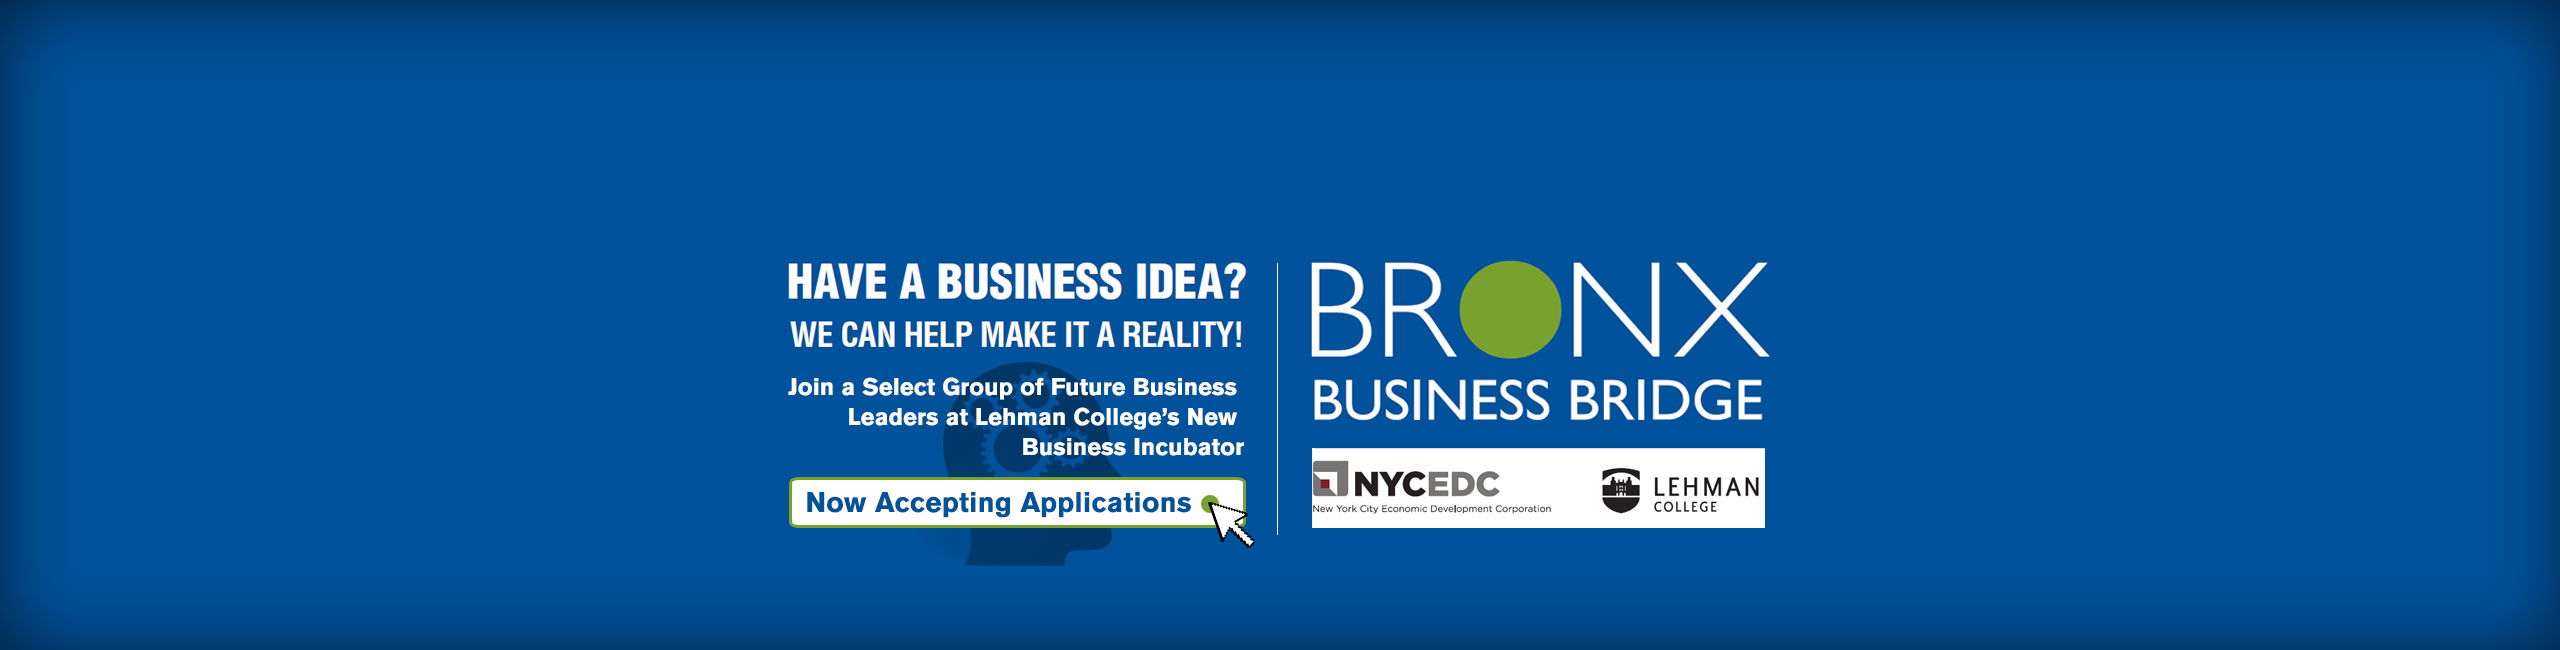 Bronx Business Bridge